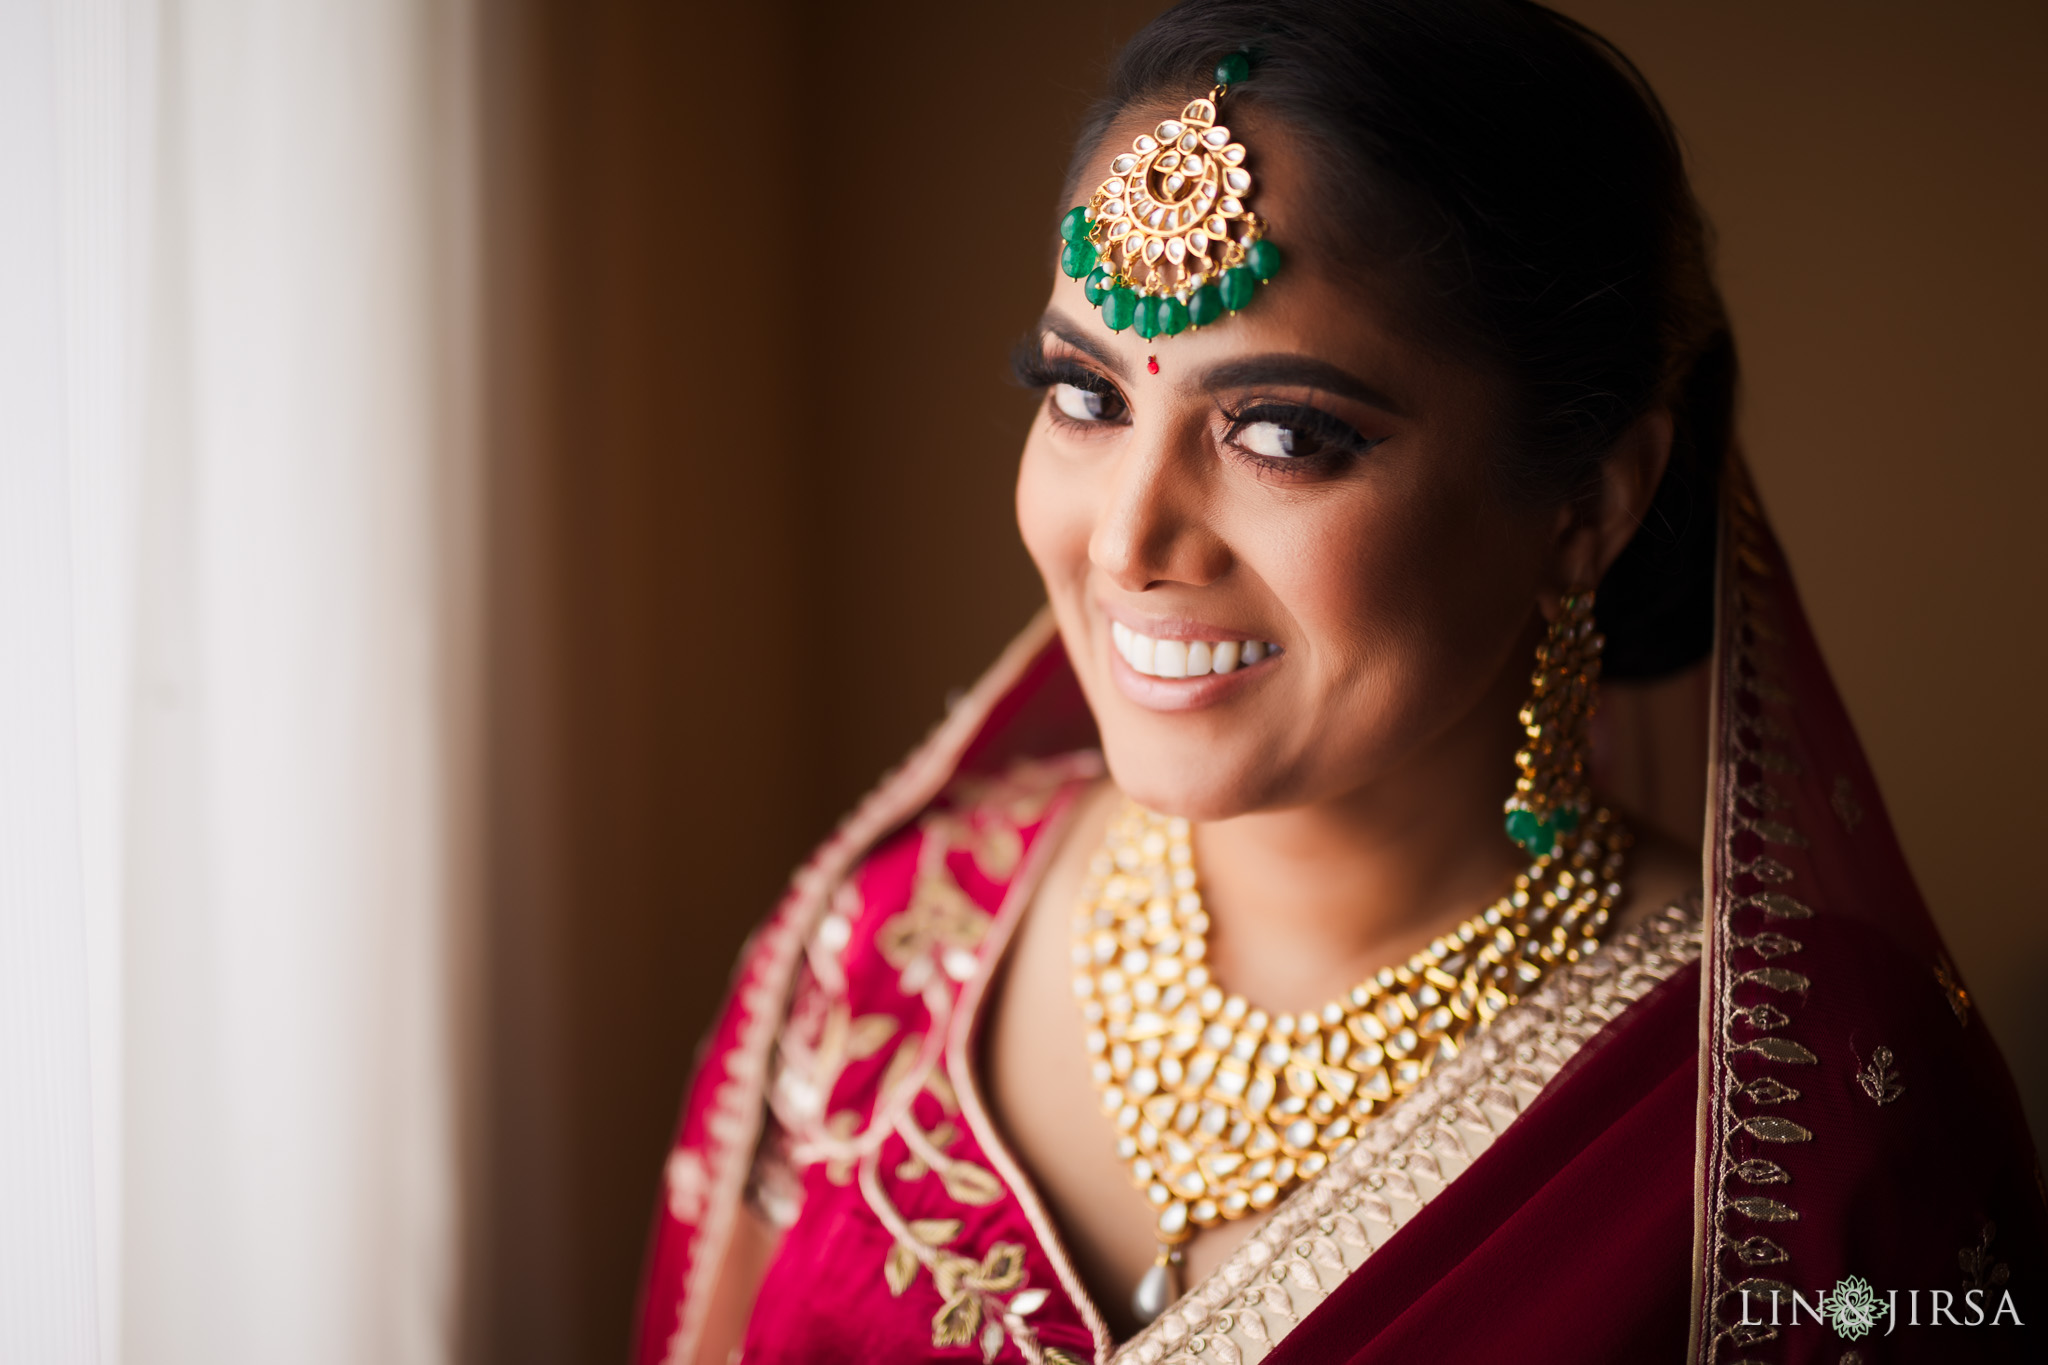 007 marriott santa clara indian wedding photography